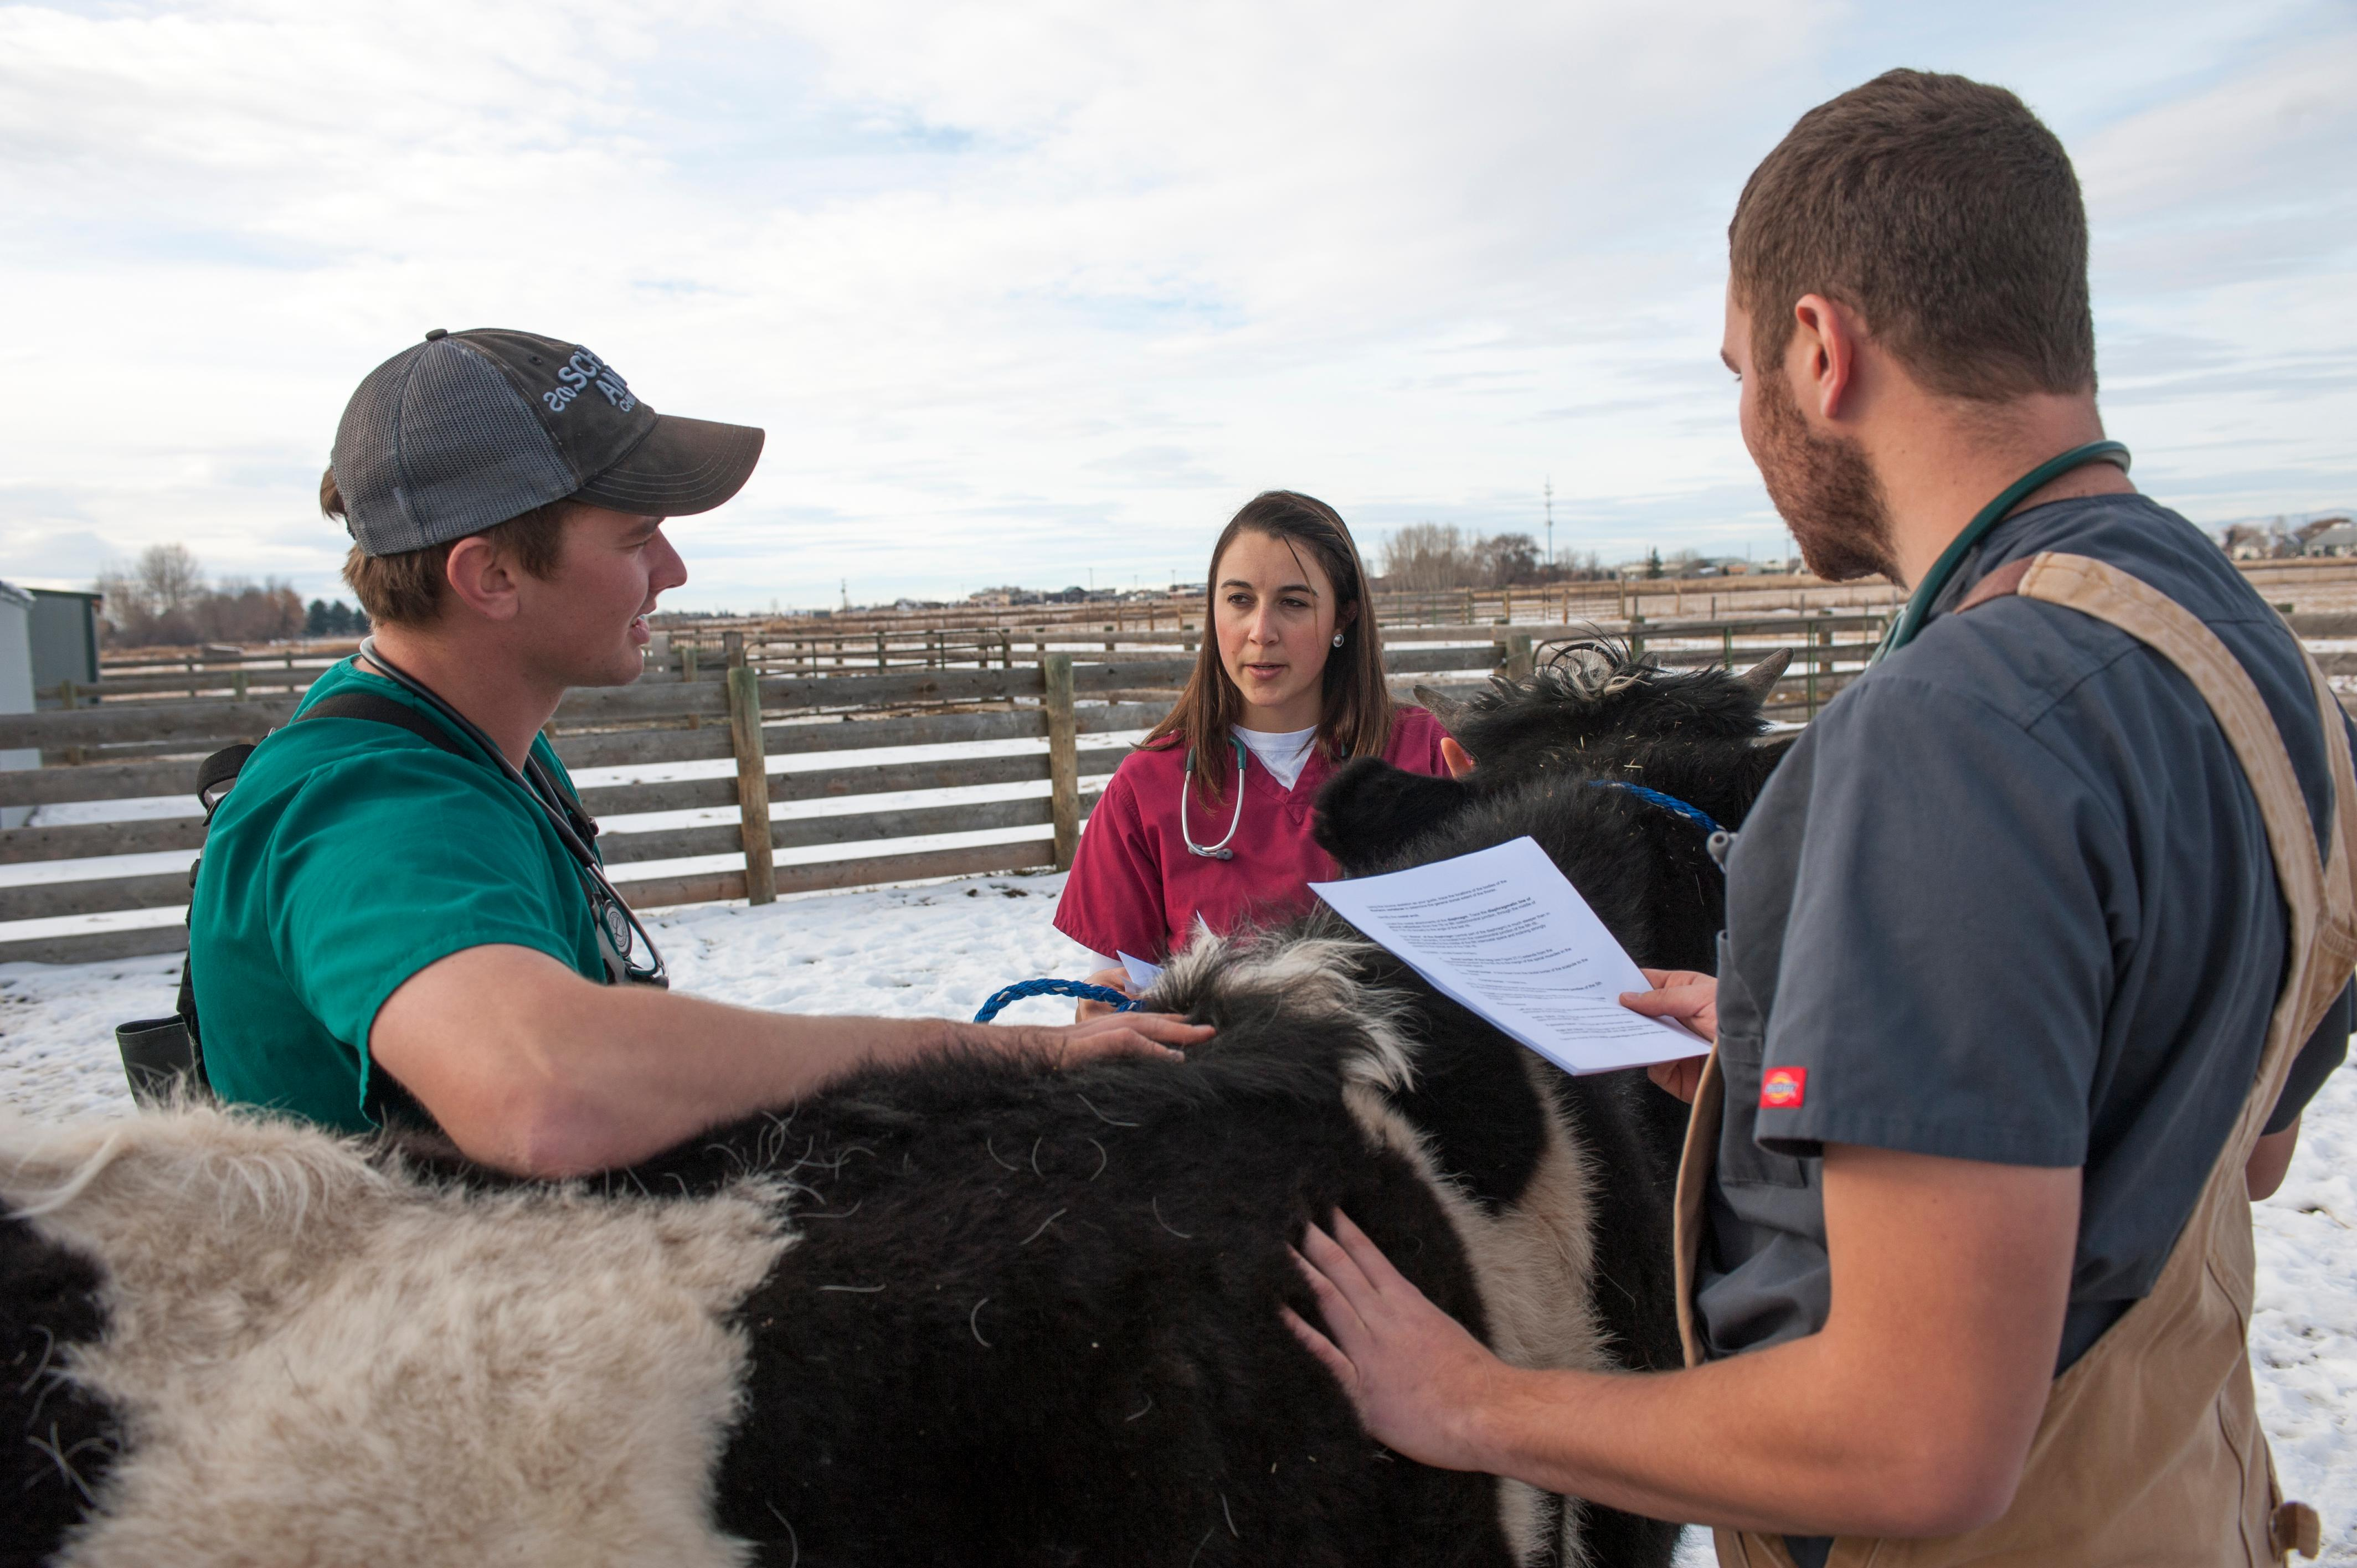 Three students talking next to a cow